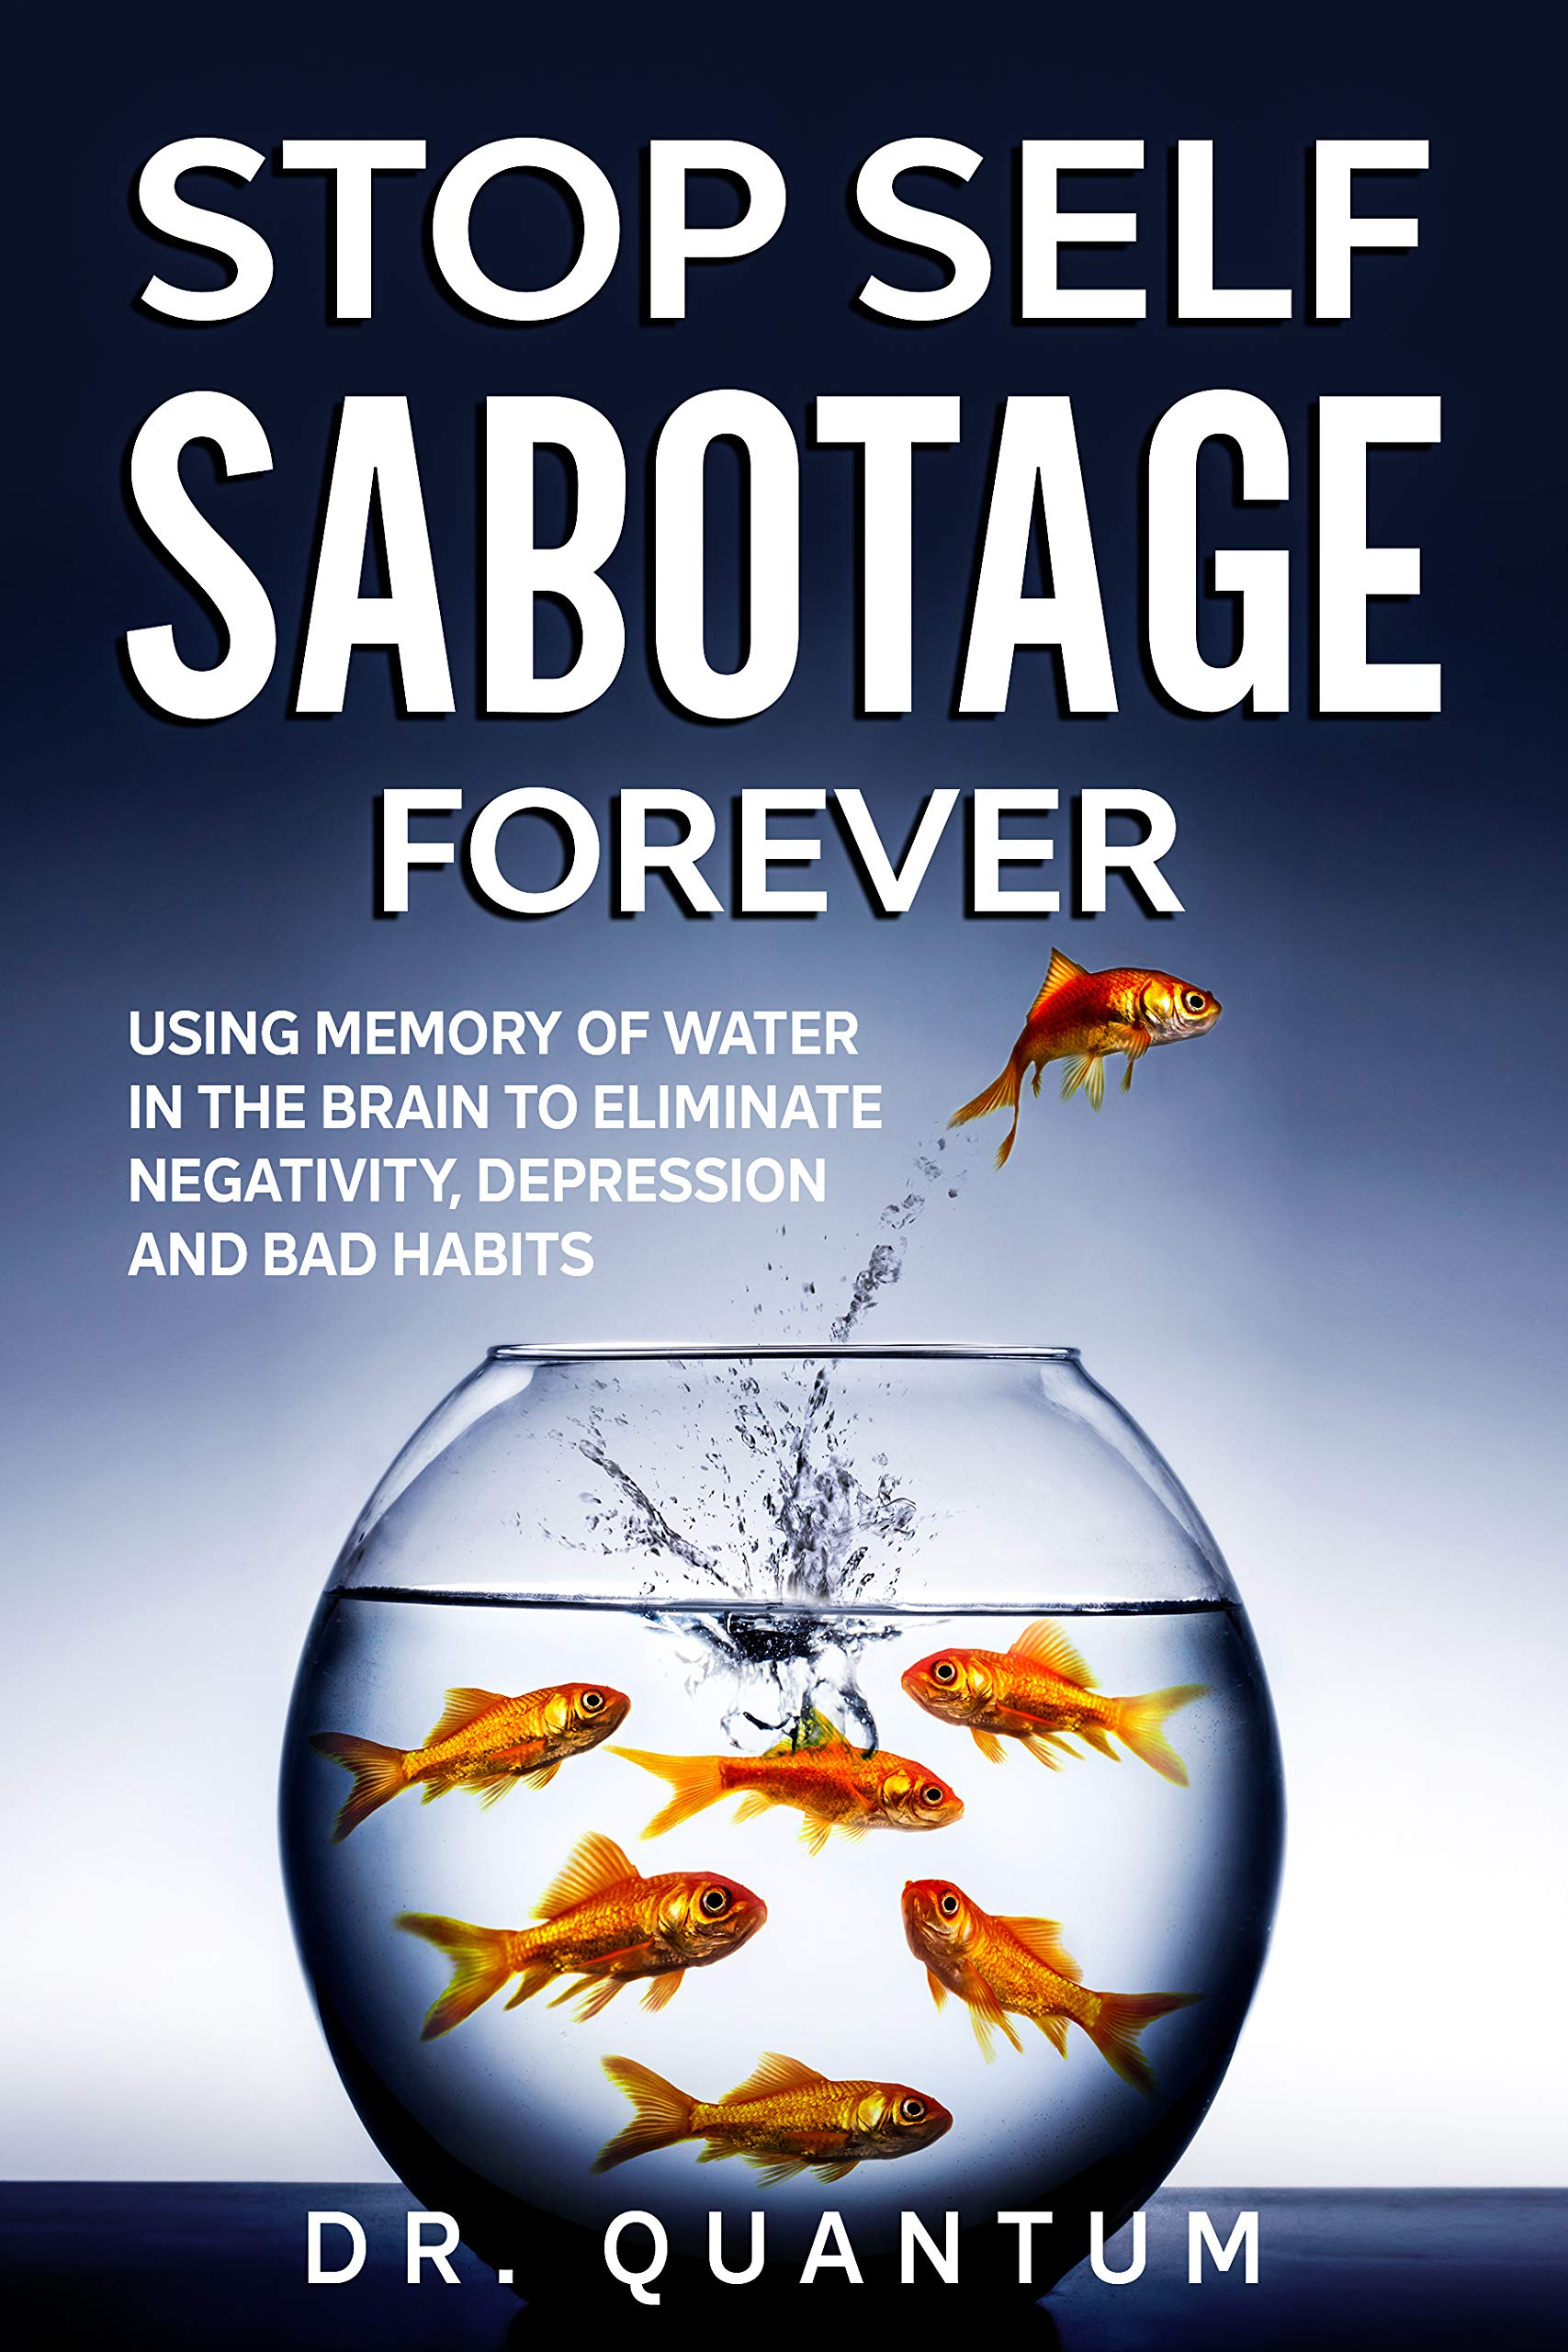 Stop Self-Sabotage Forever: Using Memory of Water in the Brain to Eliminate Negativity, Depression and Bad Habits